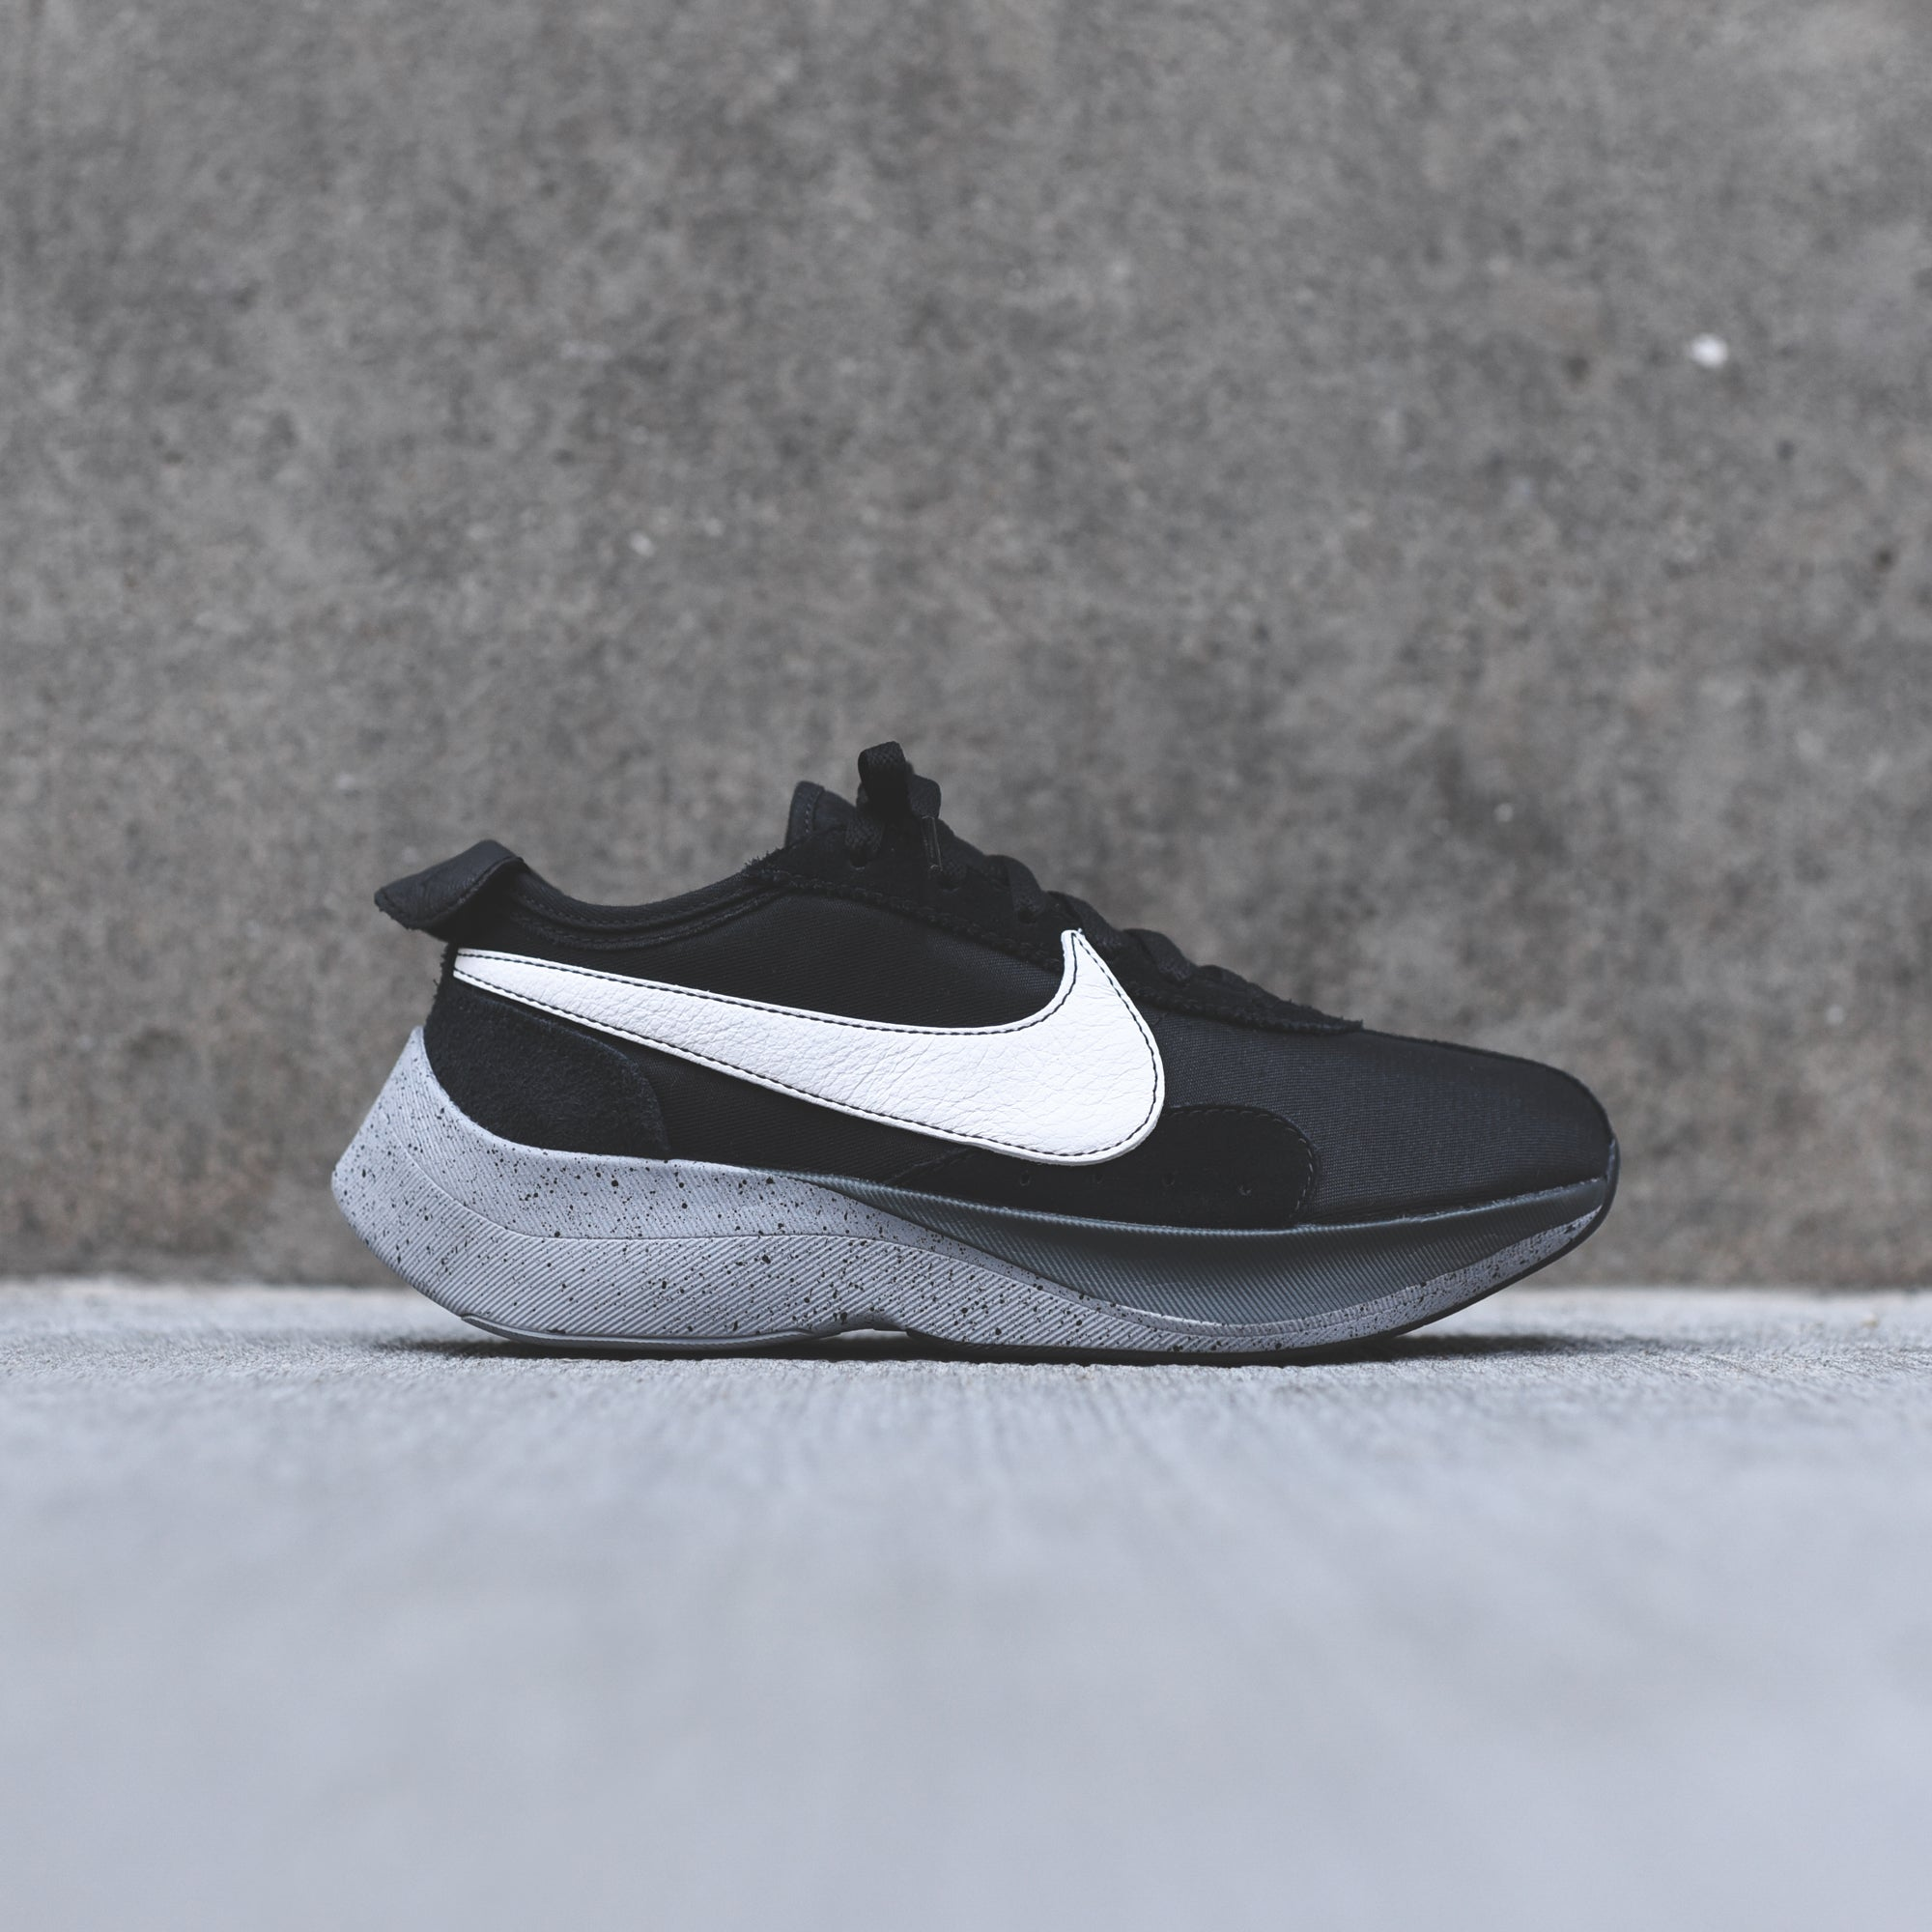 Nike Moon Racer - Black   White   Wolf Grey   Dark Grey – Kith e30110183f